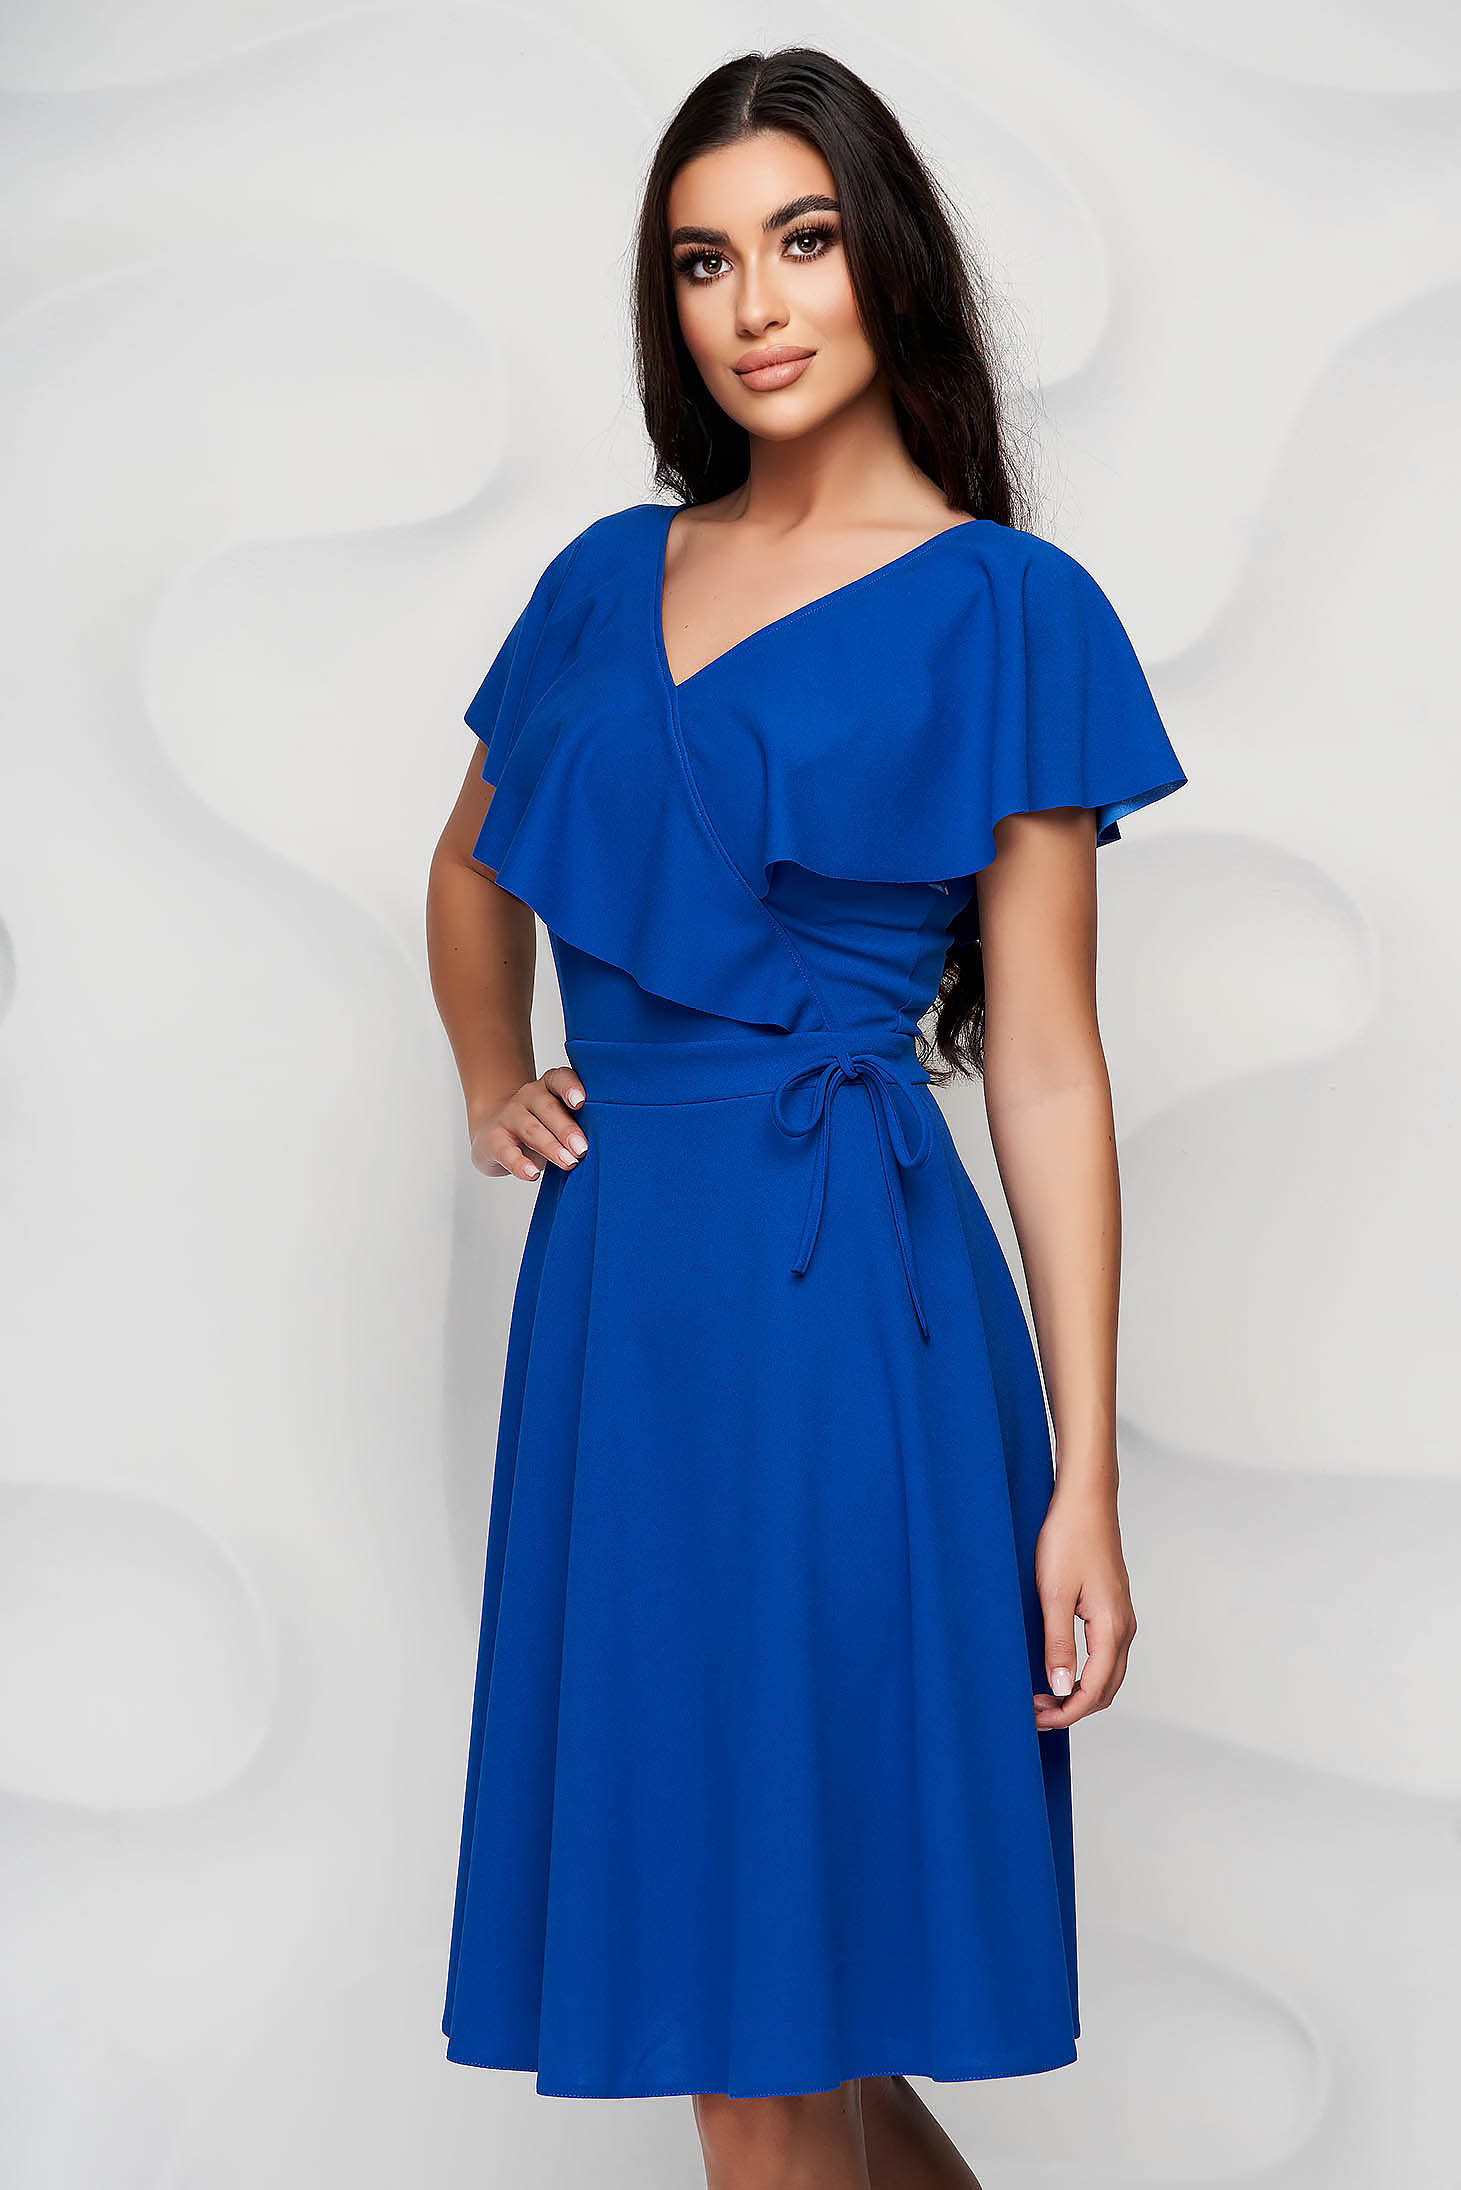 StarShinerS blue dress short cut cloche frilly trim around cleavage line